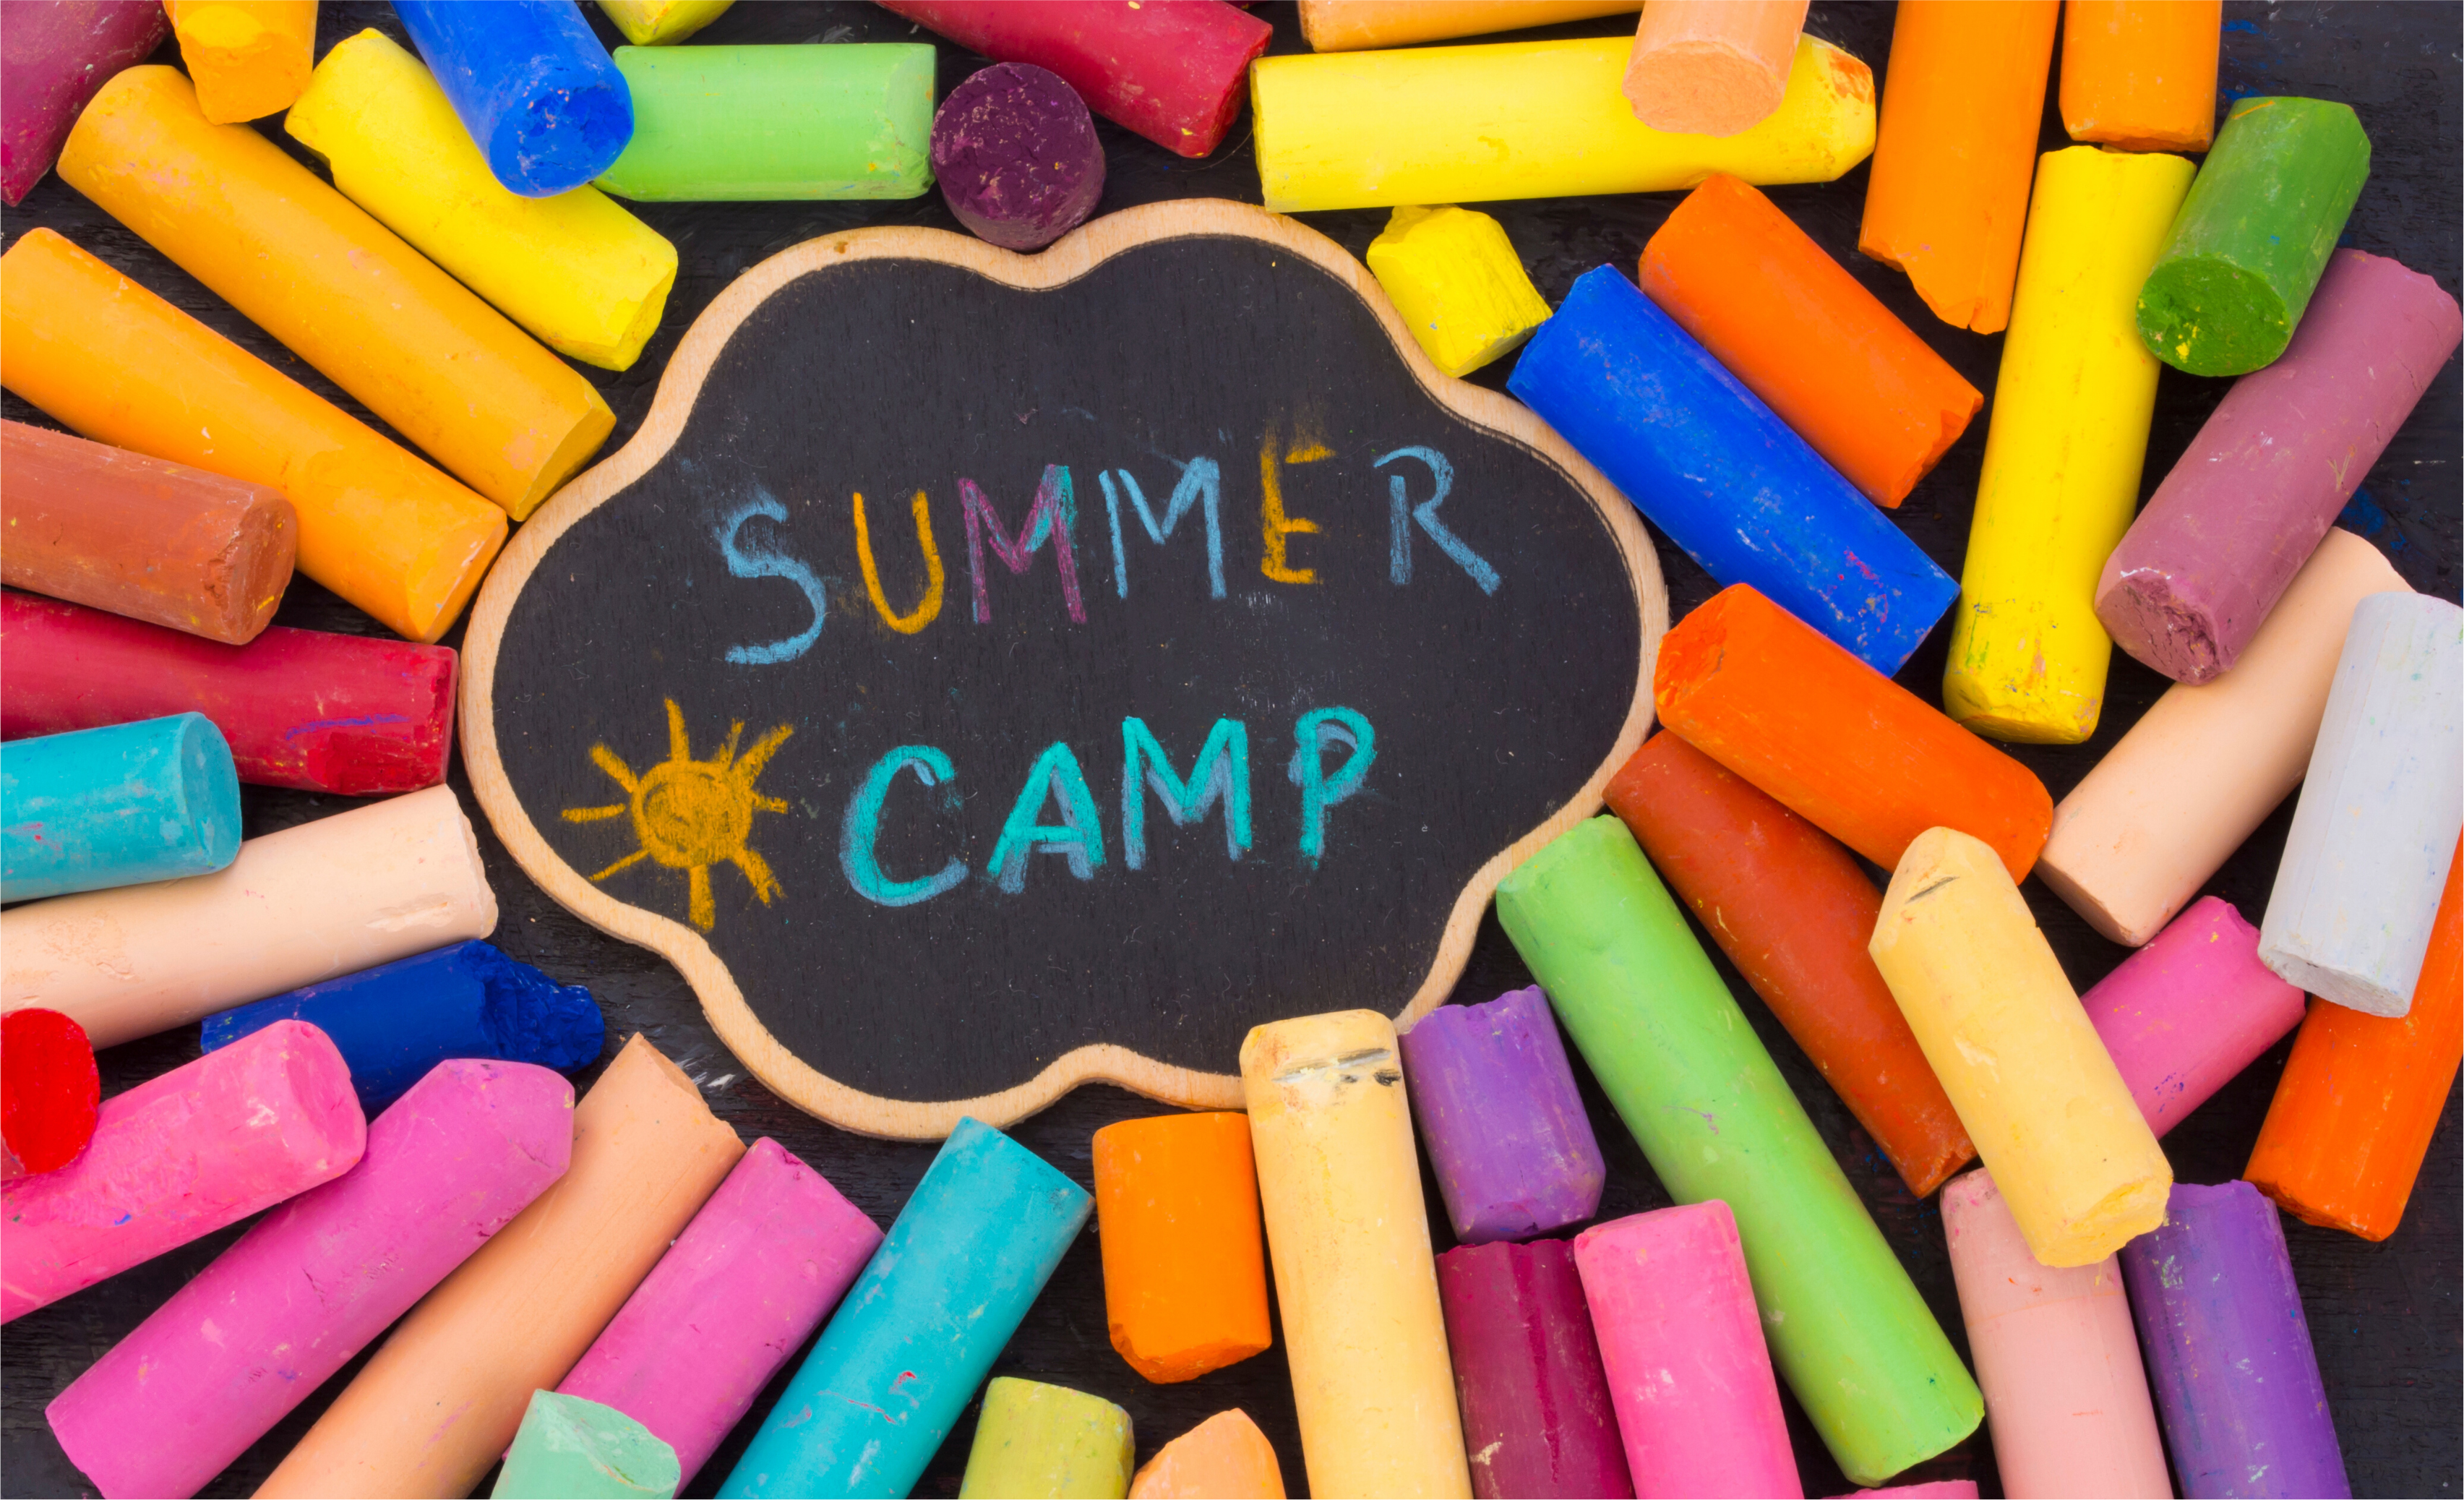 Summer Camp3 resized